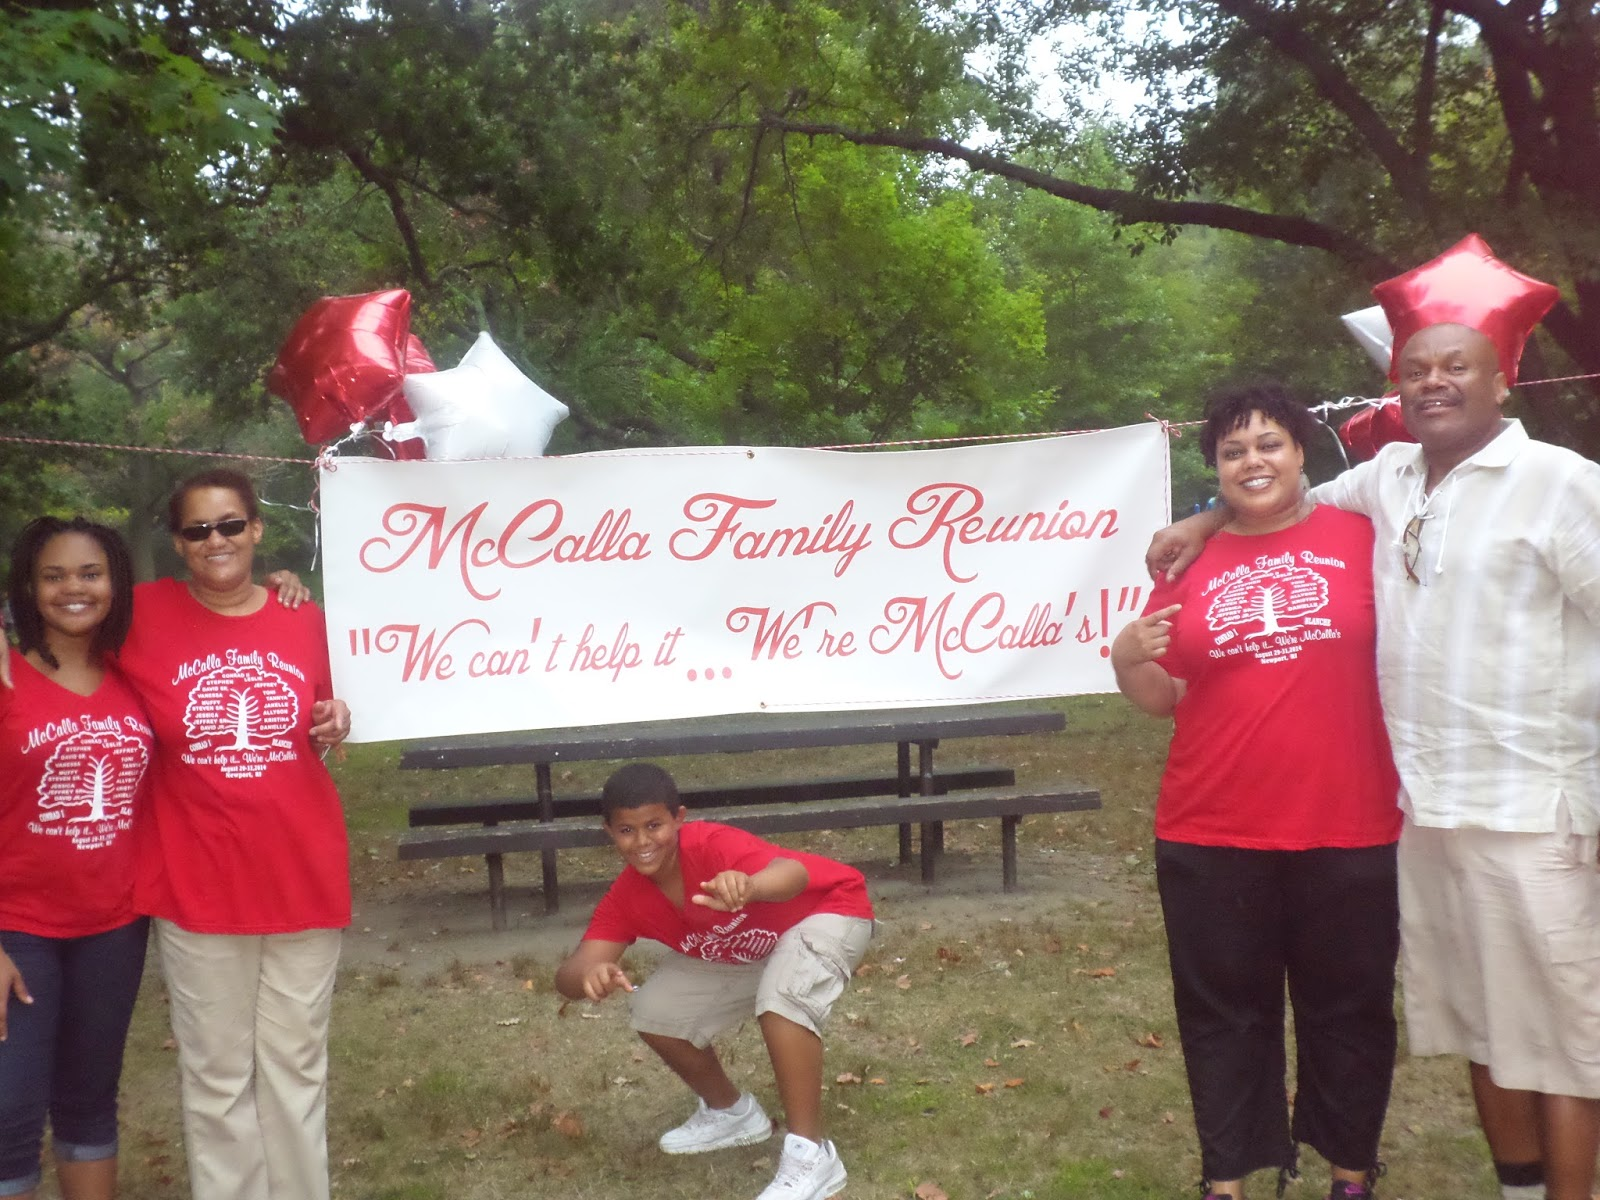 Family Reunion Banner Printed by Banners.com